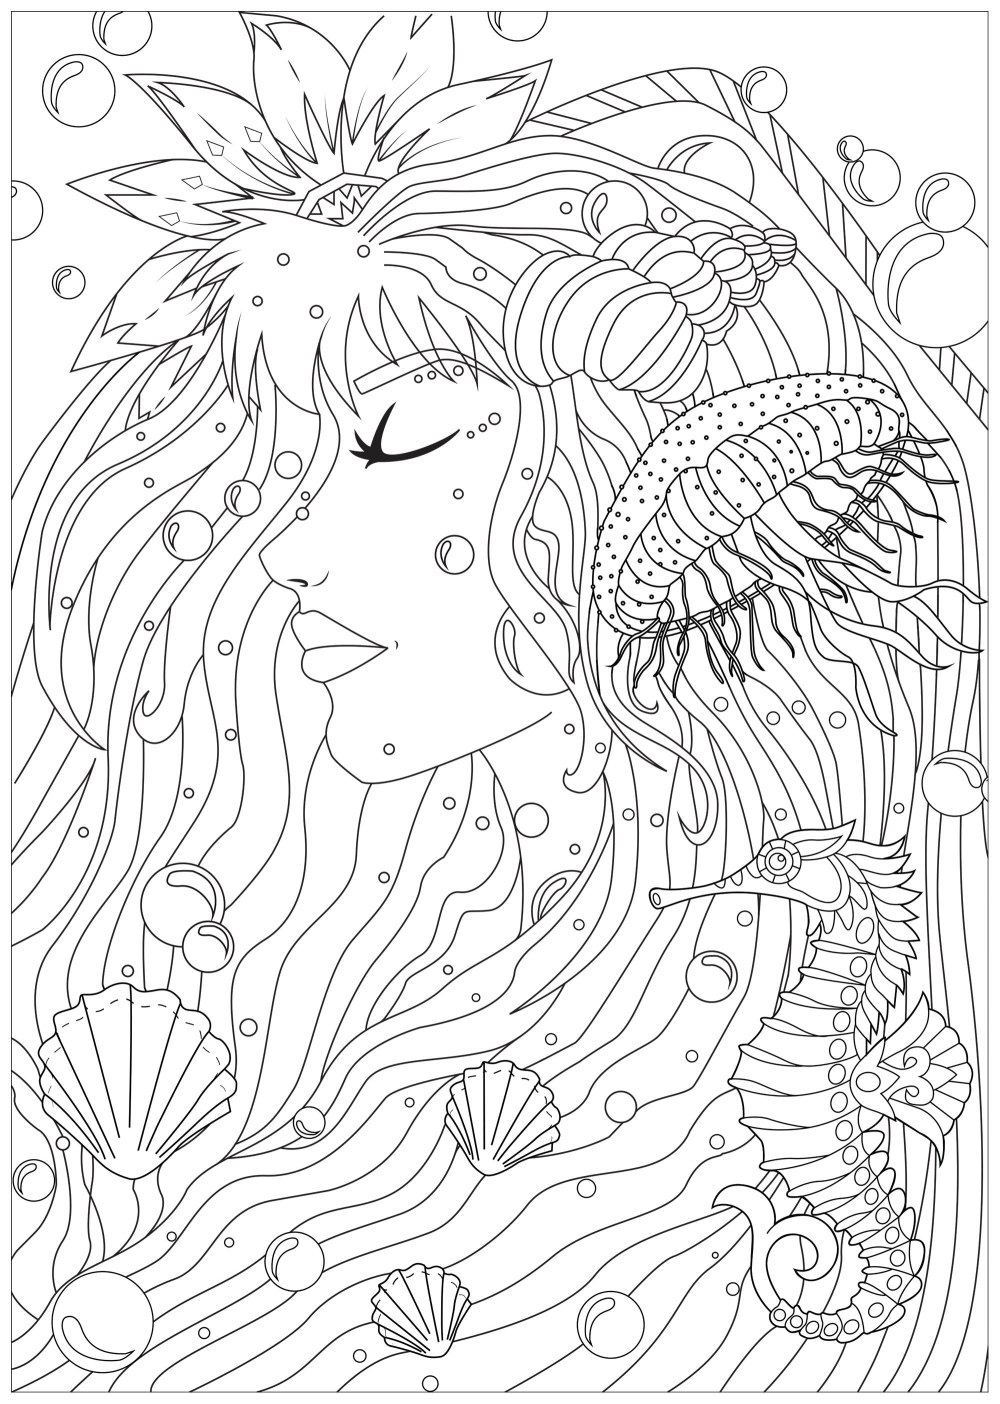 coloring-woman-of-the-seas